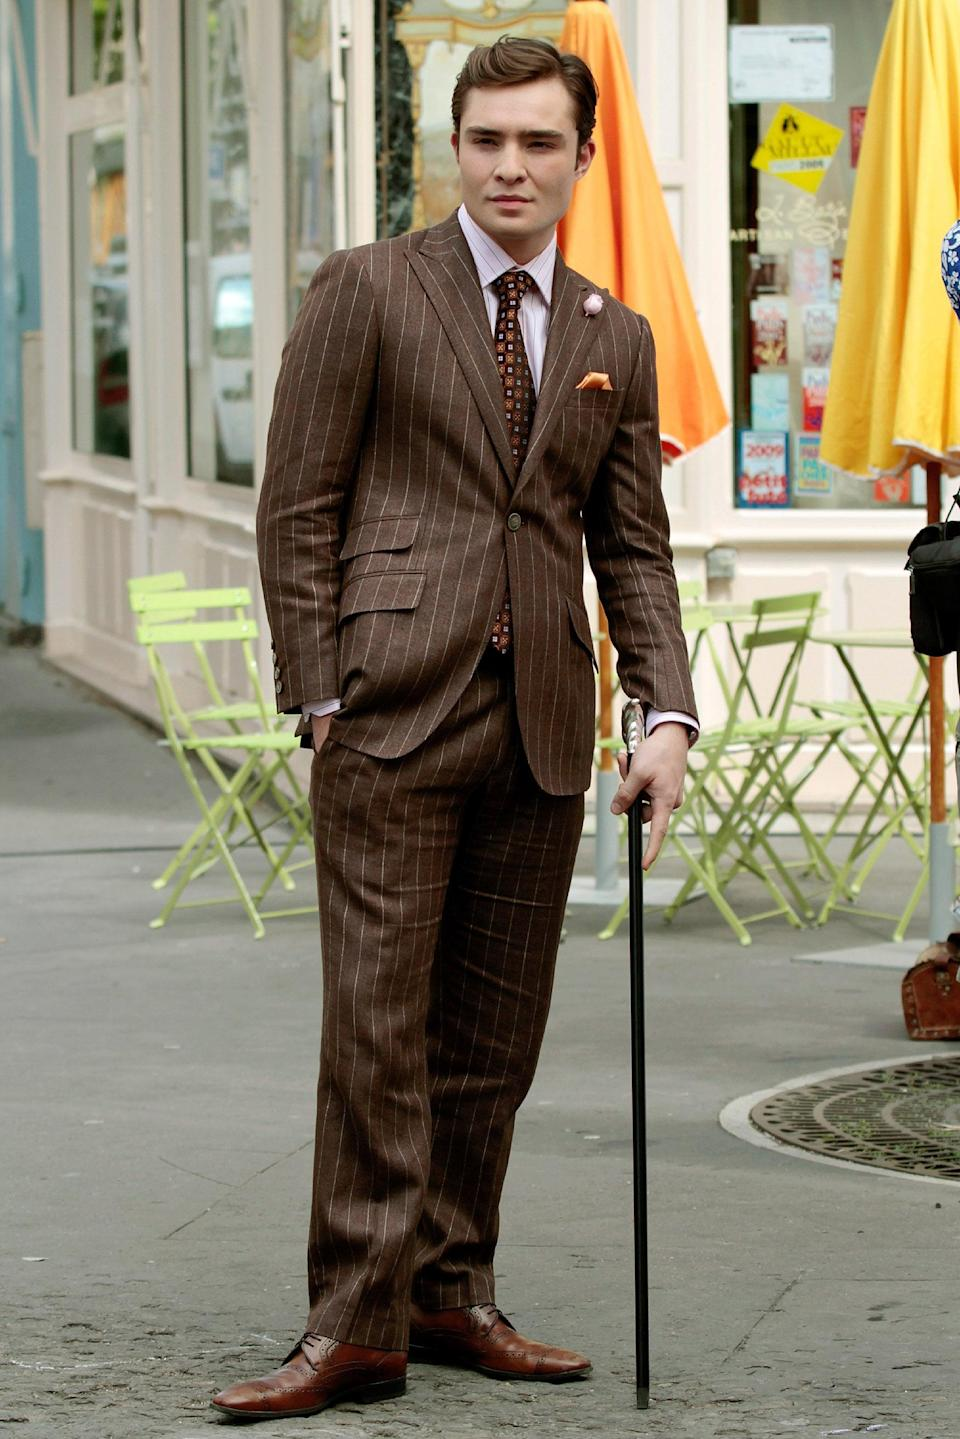 <p>How dapper does he look in this pinstripe Paul Stewart suit? Notice the pink boutonniere, too.</p>